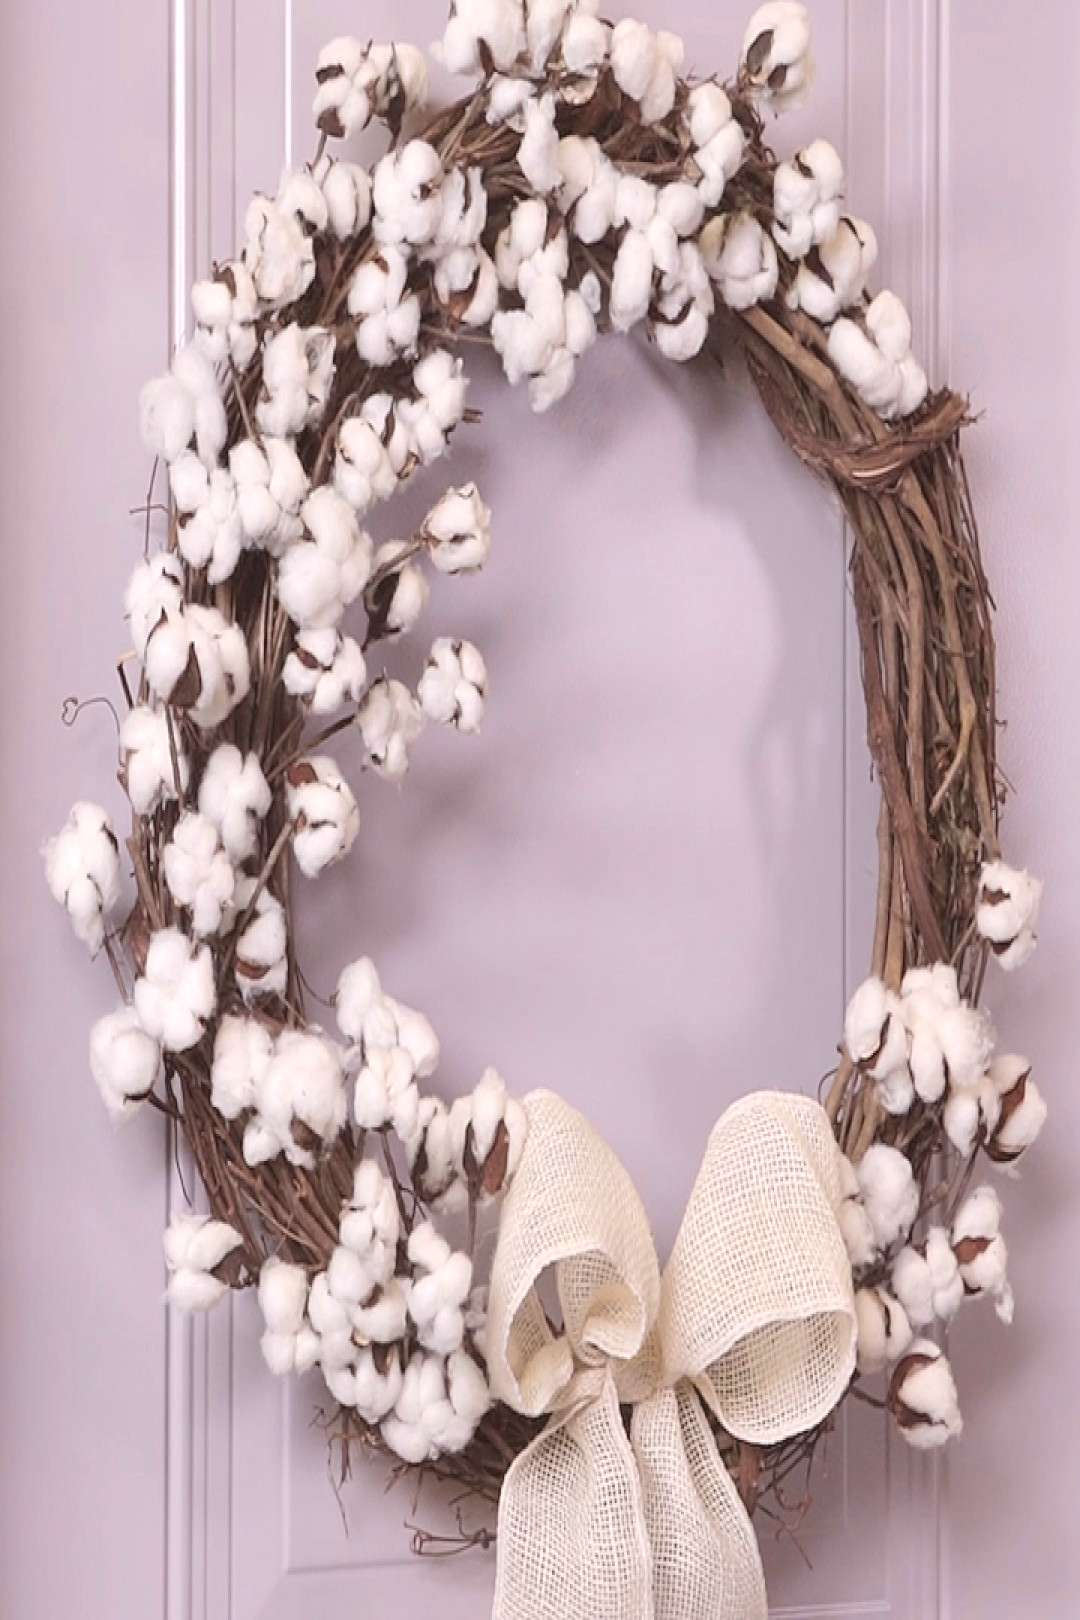 This DIY Cotton Wreath is Perfect for Your Spring Front Door Spring decorating is all about embraci